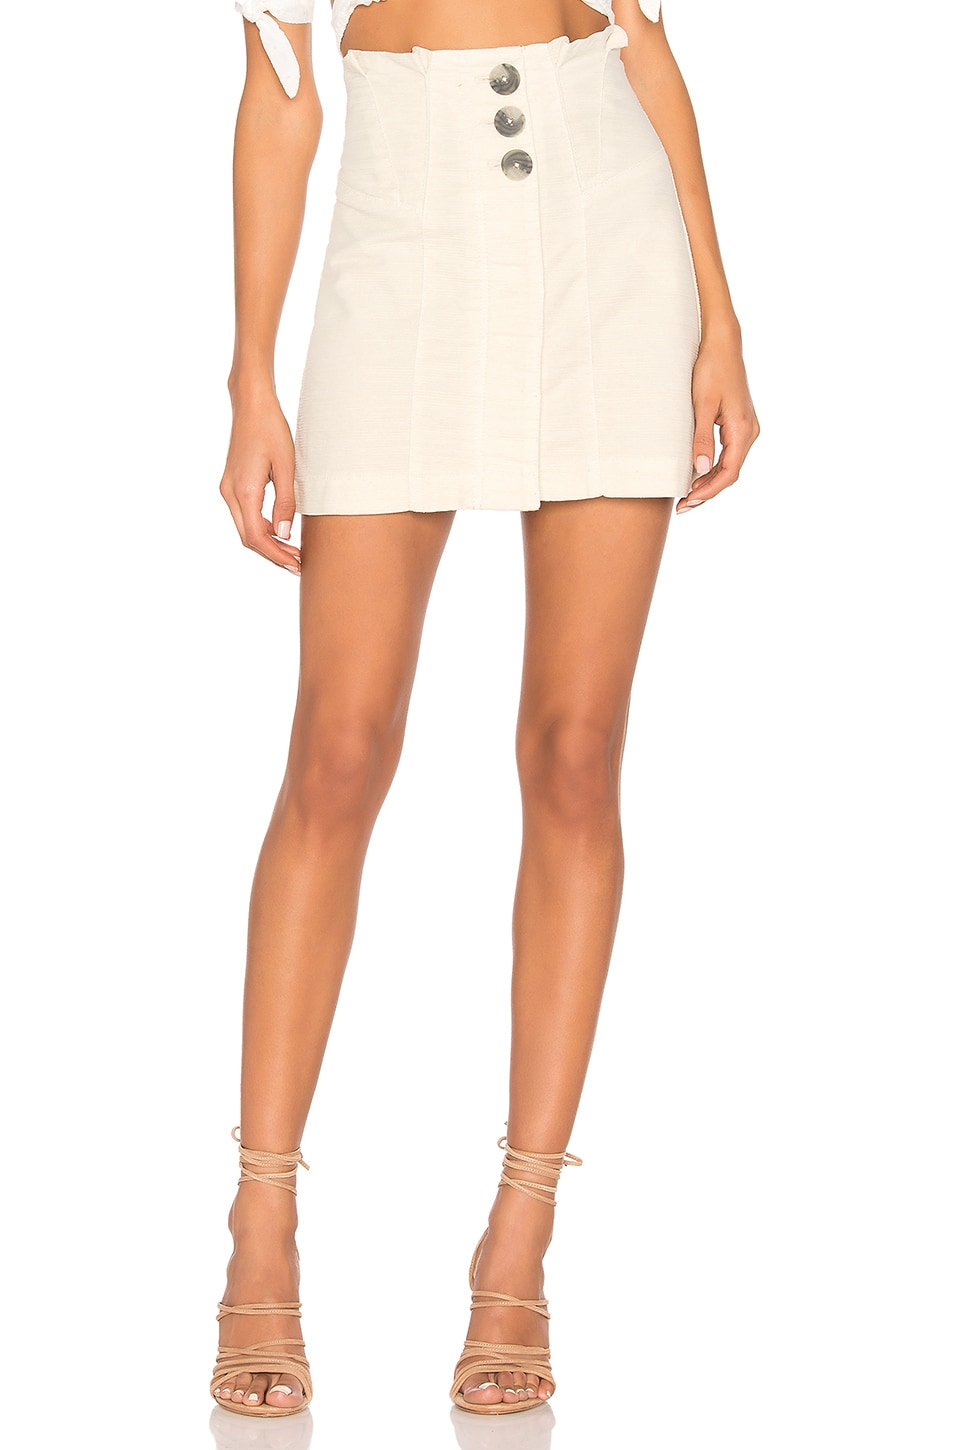 Free People Every Minute Every Hour Skirt in White